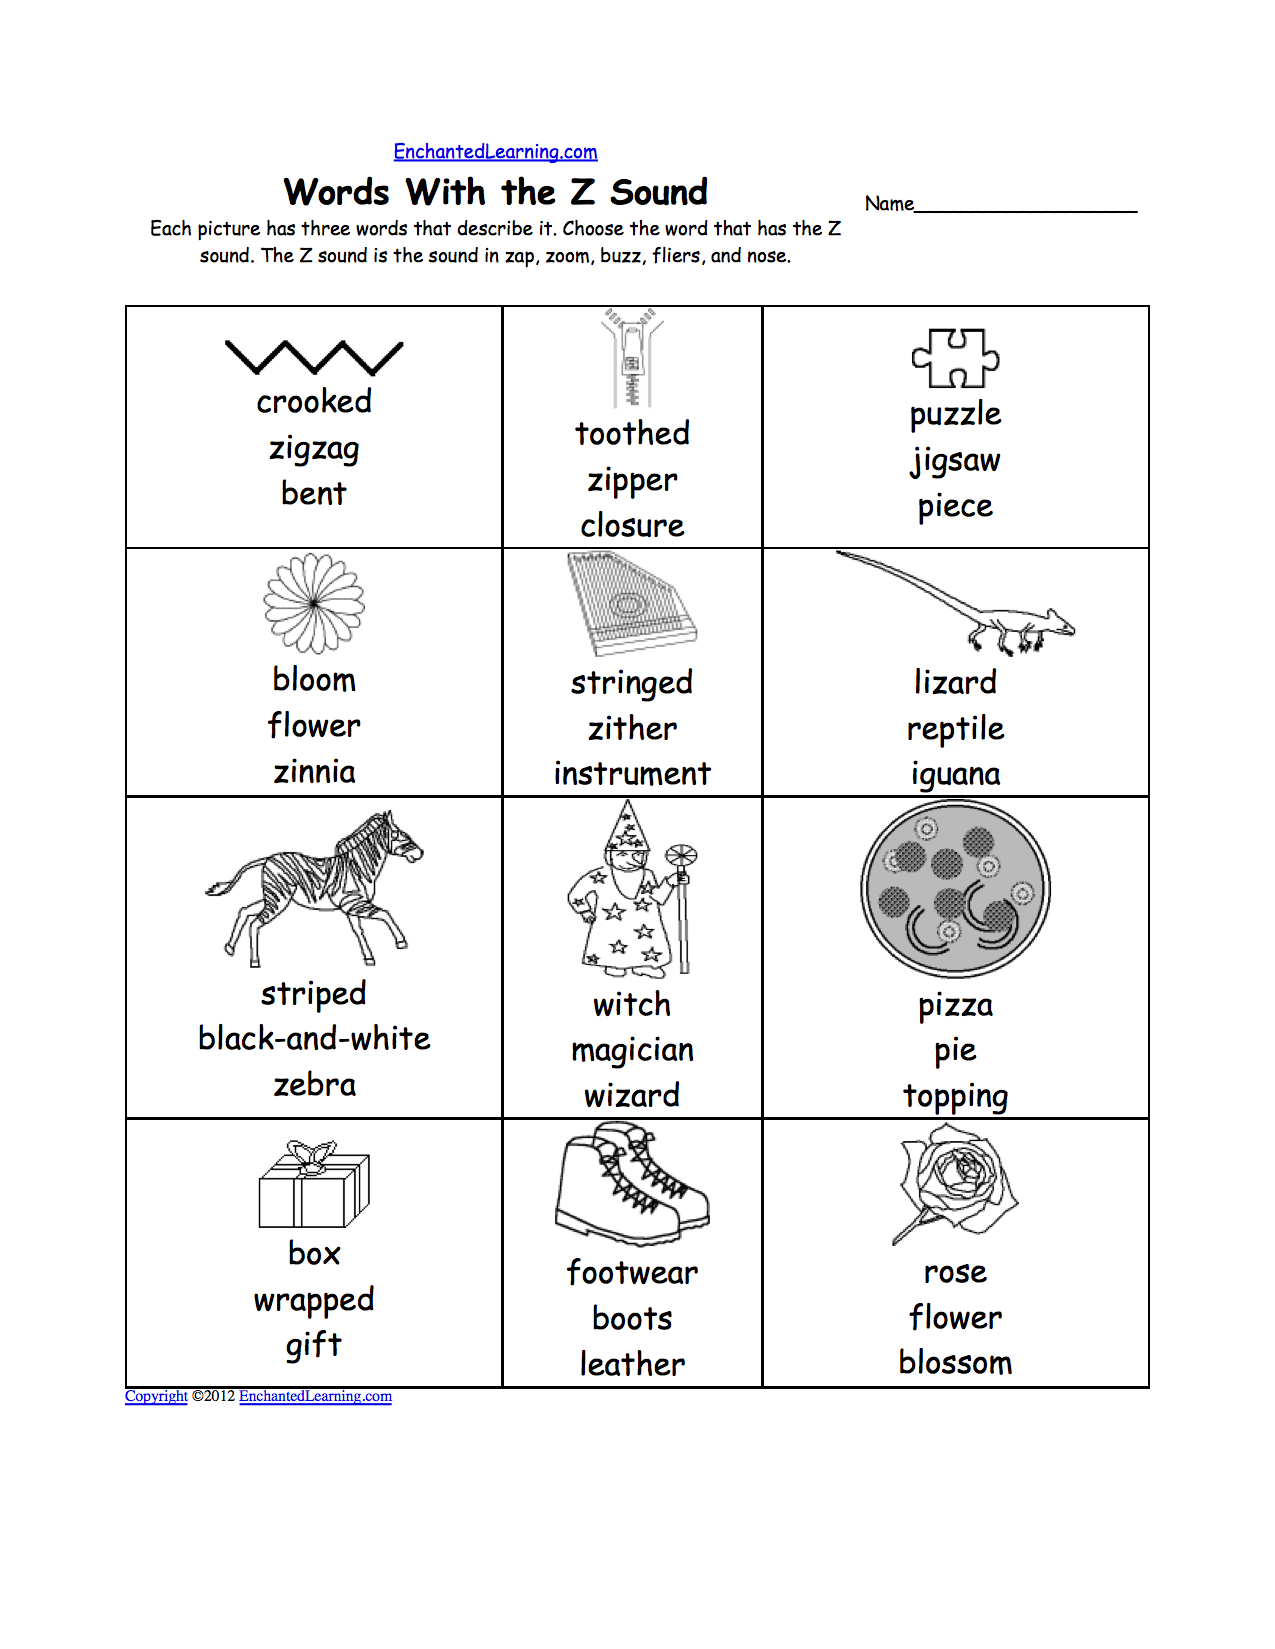 Weirdmailus  Splendid Phonics Worksheets Multiple Choice Worksheets To Print  With Hot Phonics Worksheets Multiple Choice Worksheets To Print  Enchantedlearningcom With Endearing Create Math Worksheets Printable Also Free English Language Worksheets In Addition Parts Of The Body Worksheets And Adding And Subtracting Using A Number Line Worksheets As Well As Finish The Sentence Worksheets Additionally Sort Worksheets Alphabetically From Enchantedlearningcom With Weirdmailus  Hot Phonics Worksheets Multiple Choice Worksheets To Print  With Endearing Phonics Worksheets Multiple Choice Worksheets To Print  Enchantedlearningcom And Splendid Create Math Worksheets Printable Also Free English Language Worksheets In Addition Parts Of The Body Worksheets From Enchantedlearningcom